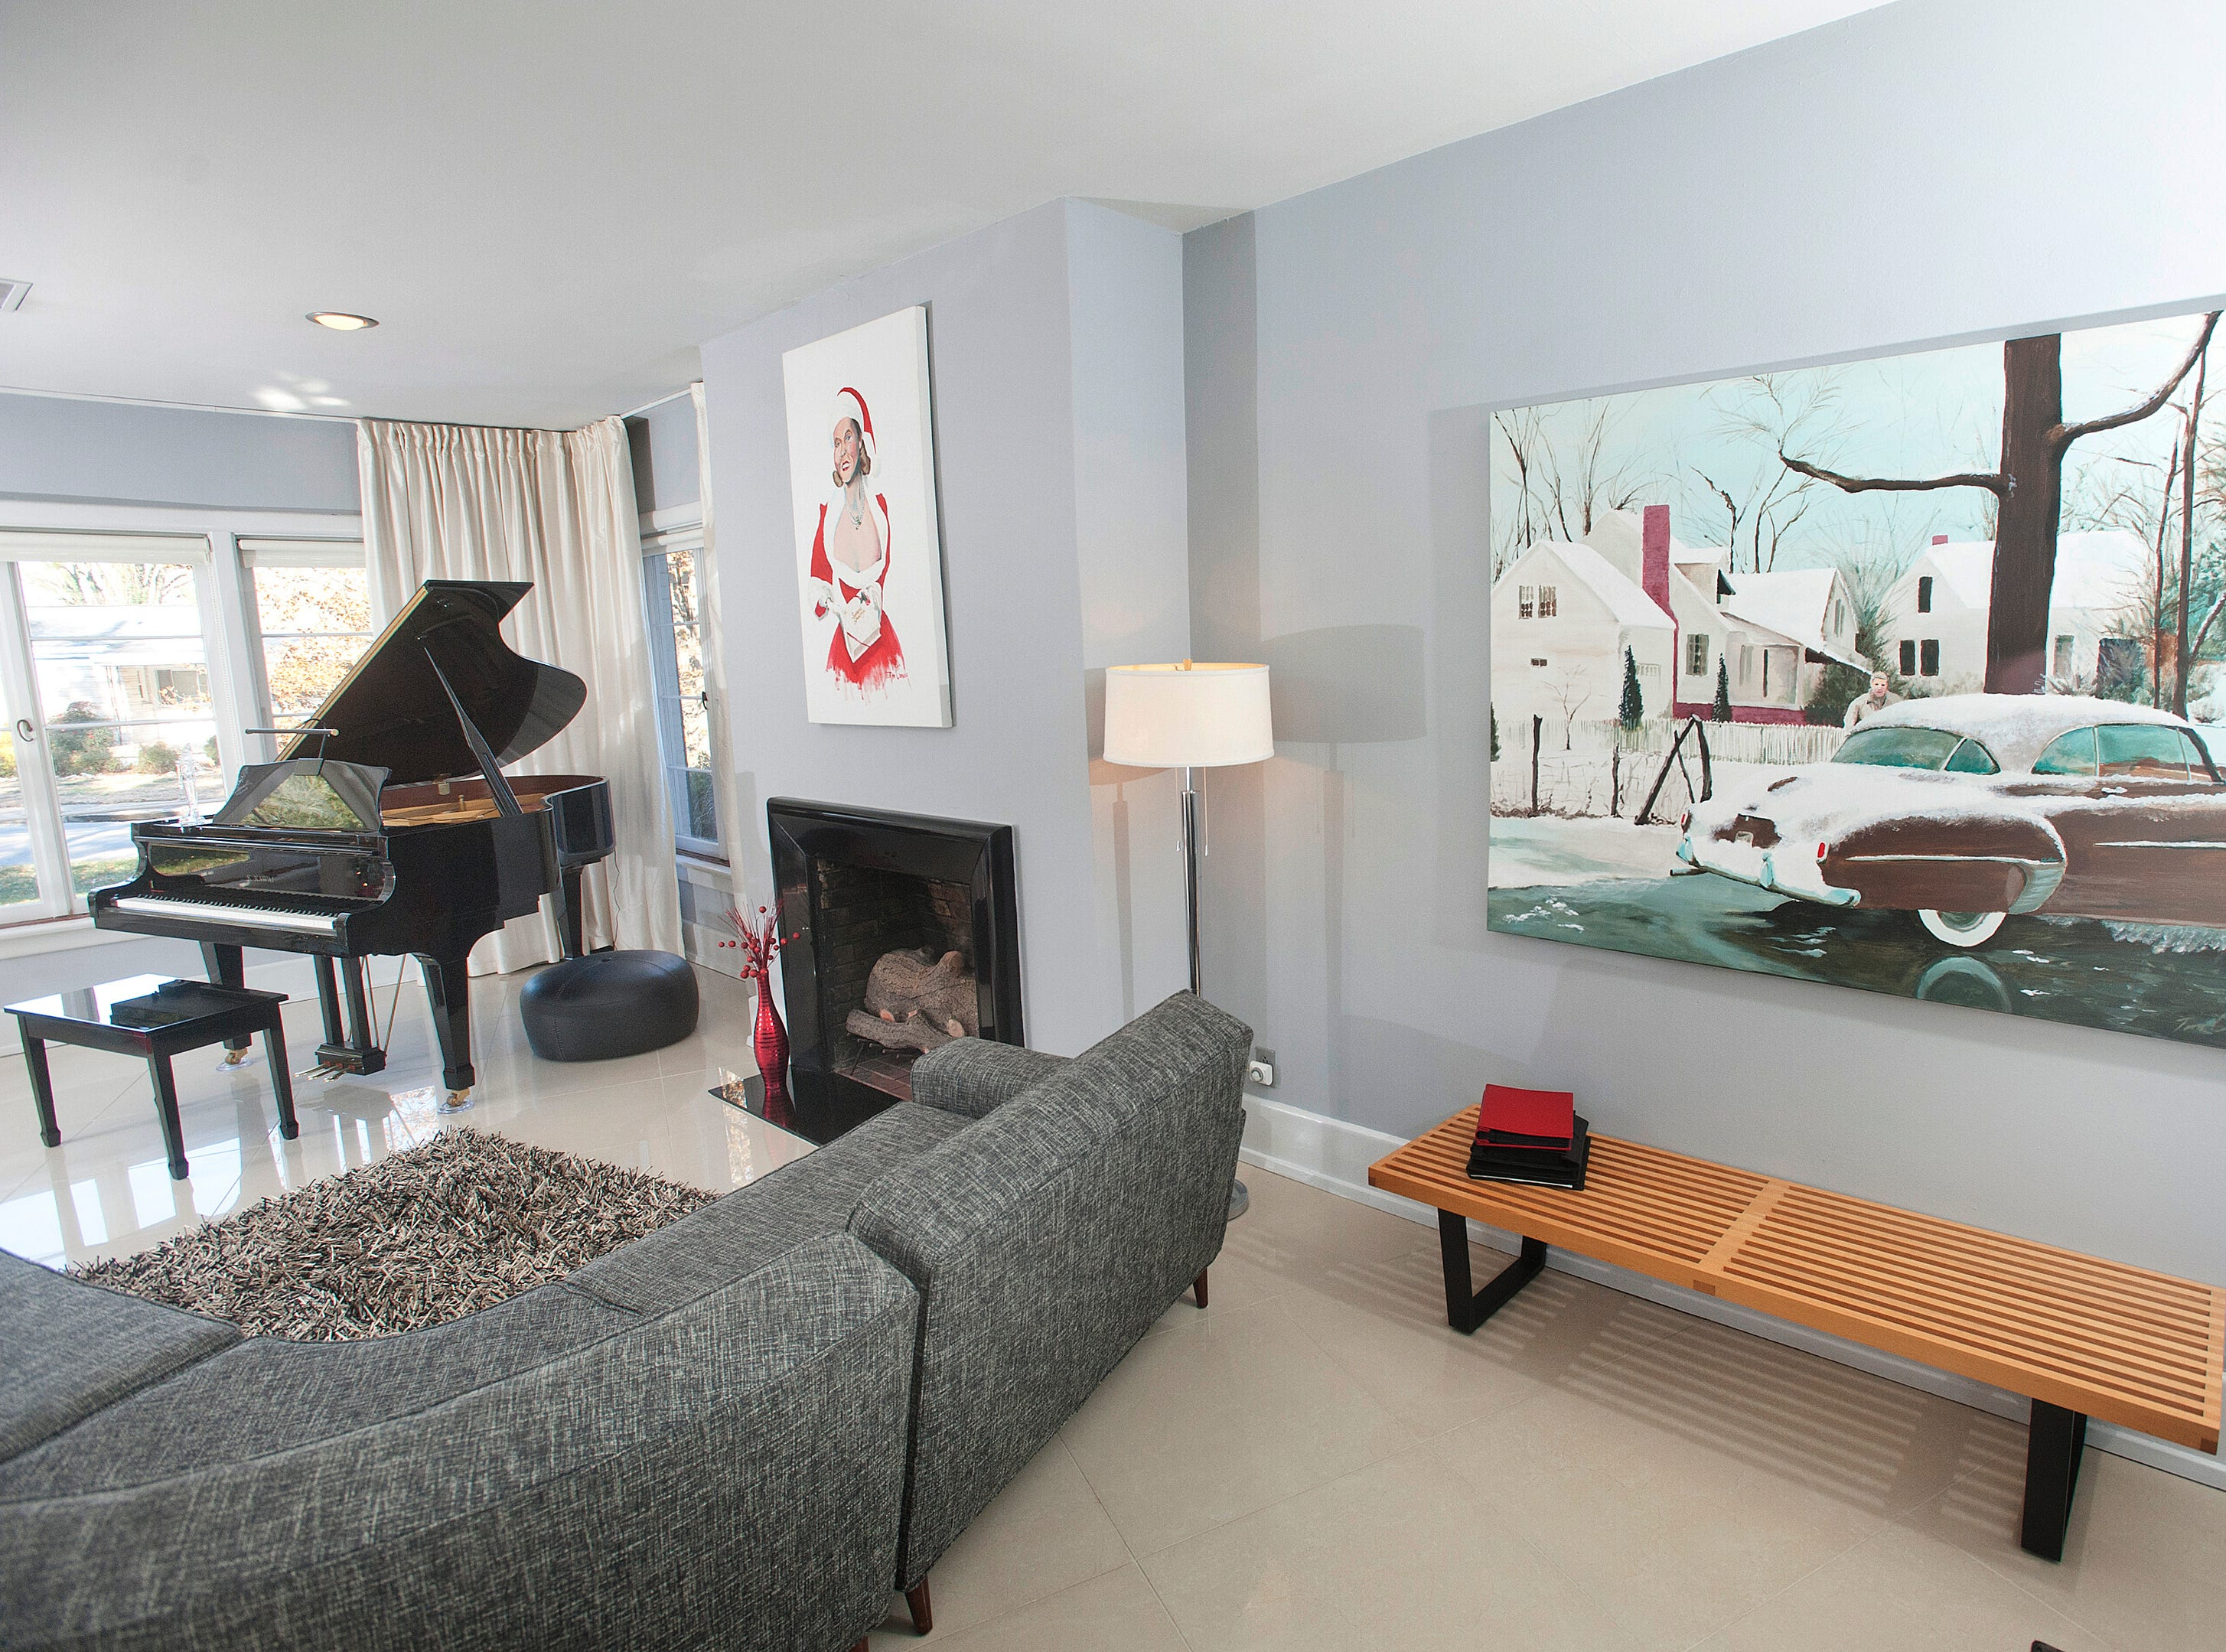 """The home's living room. At right, Cannady's painting called """"Federberg,"""" reproduced a scene of Cannady's dad caught in an old photograph.10 December 2018"""